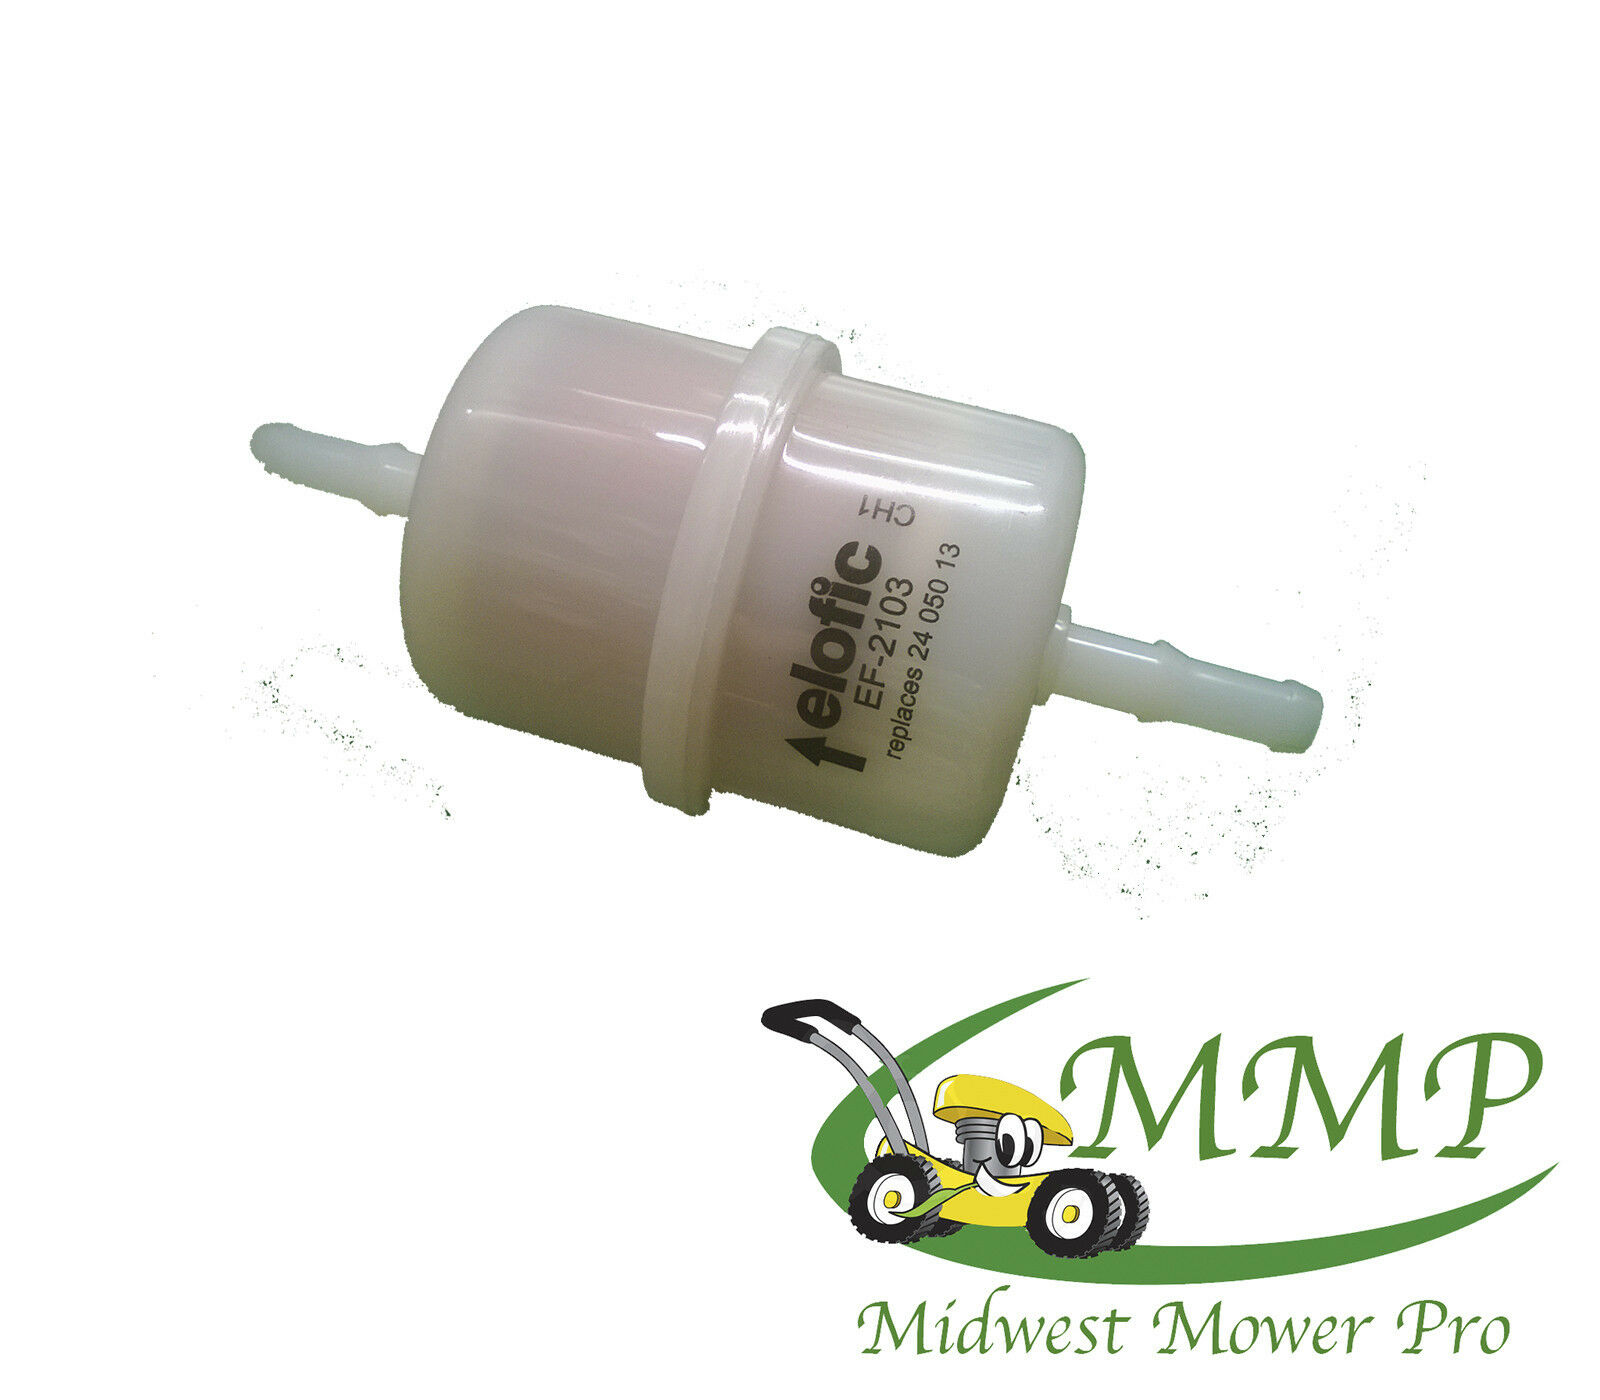 Kohler Lawn Mower Fuel Filter Small Engine Installation Replaces New High Capacity 1600x1400